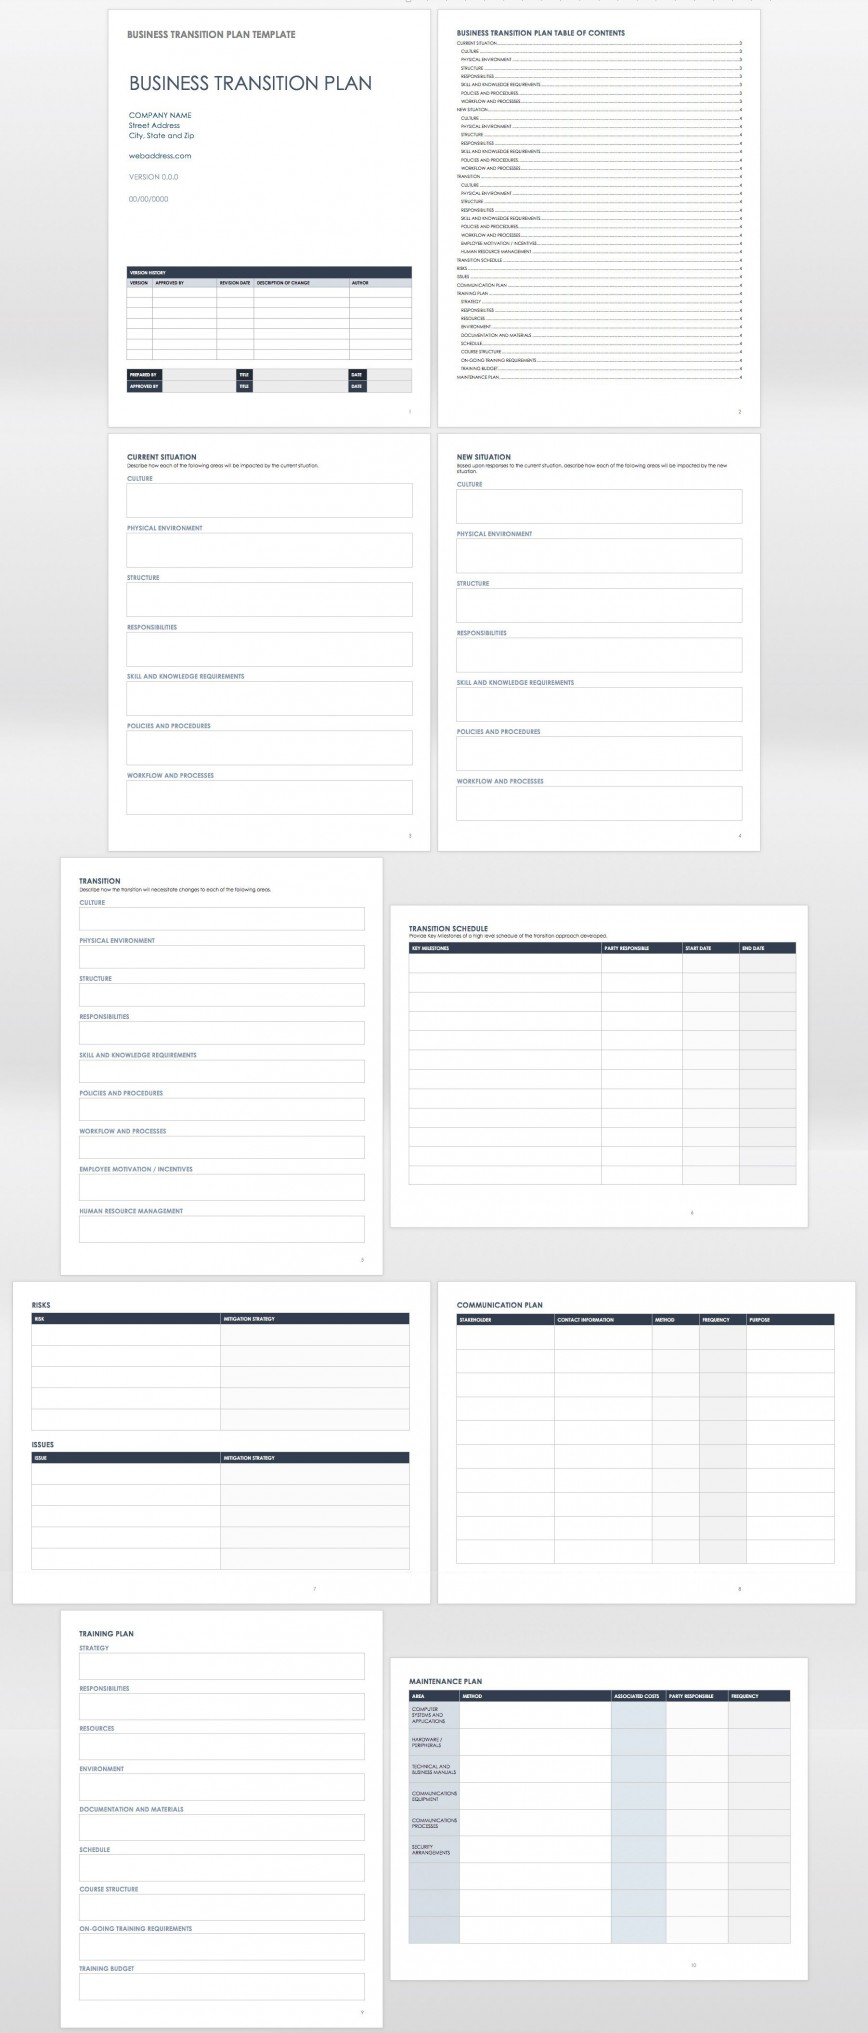 004 Imposing Project Transition Plan Template Idea  Ppt Software Excel Download